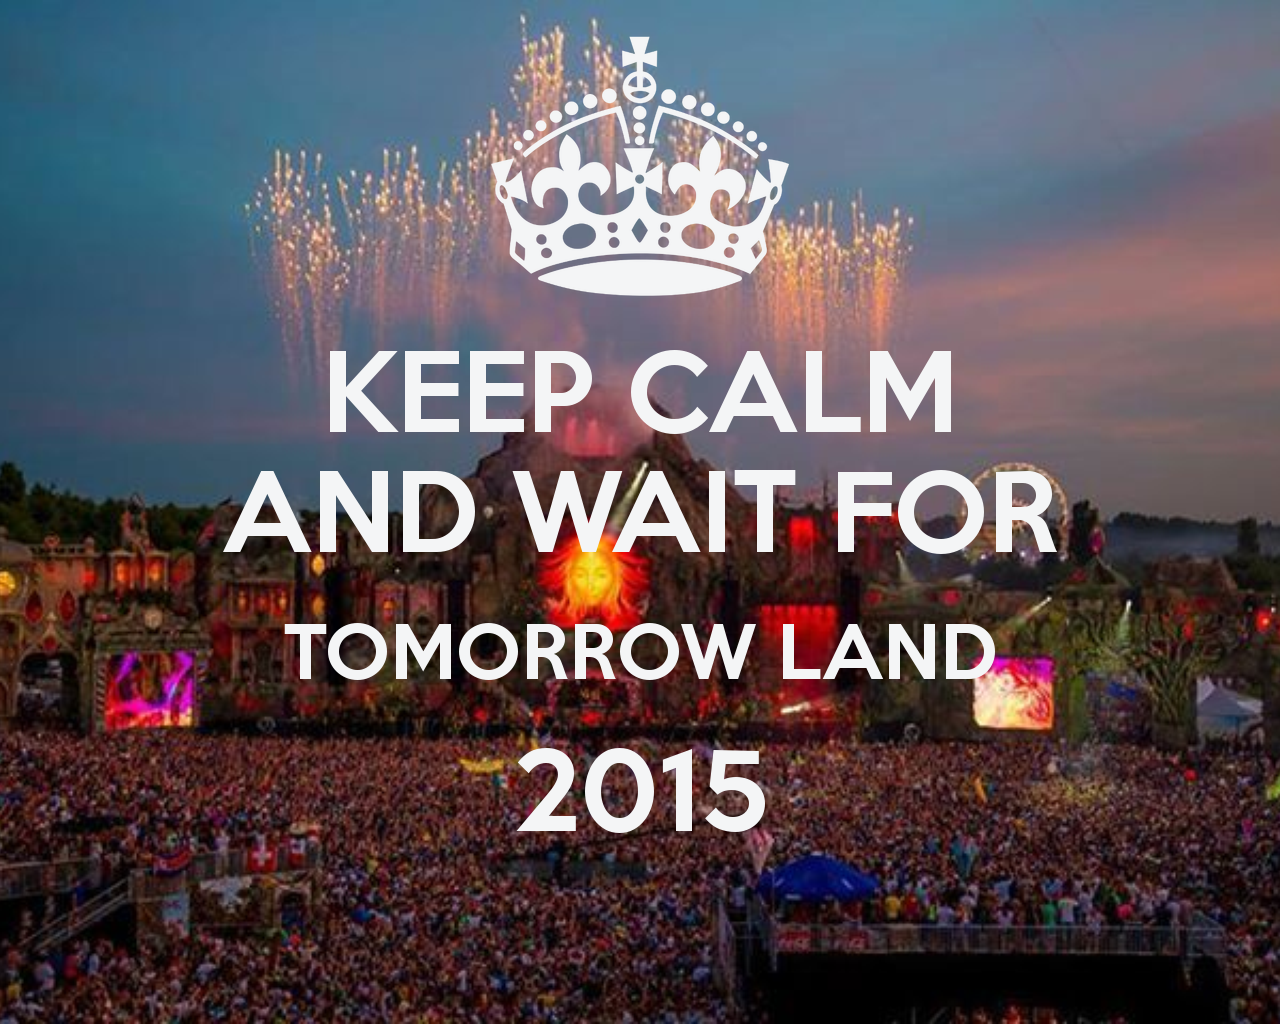 keep-calm-and-wait-for-tomorrow-land-2015--8